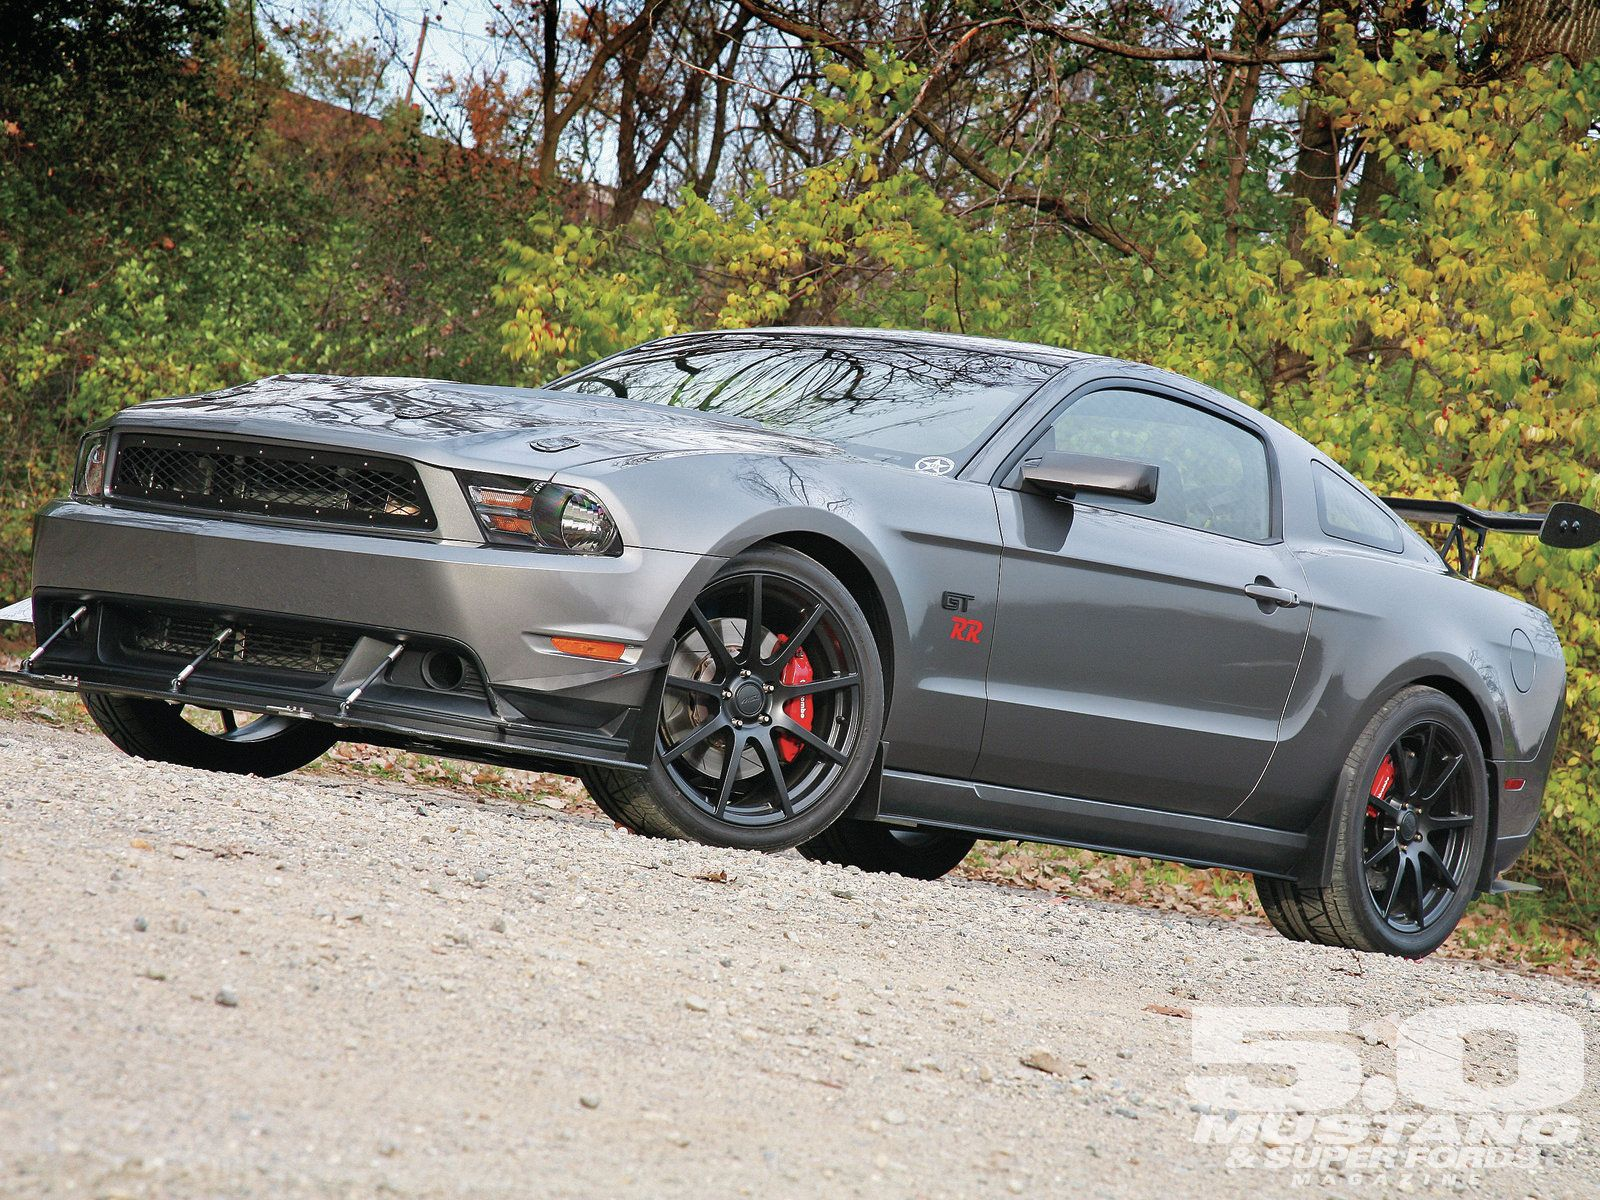 2010 Ford Mustang Gt Rr Total Fabrication 2010 Ford Mustang